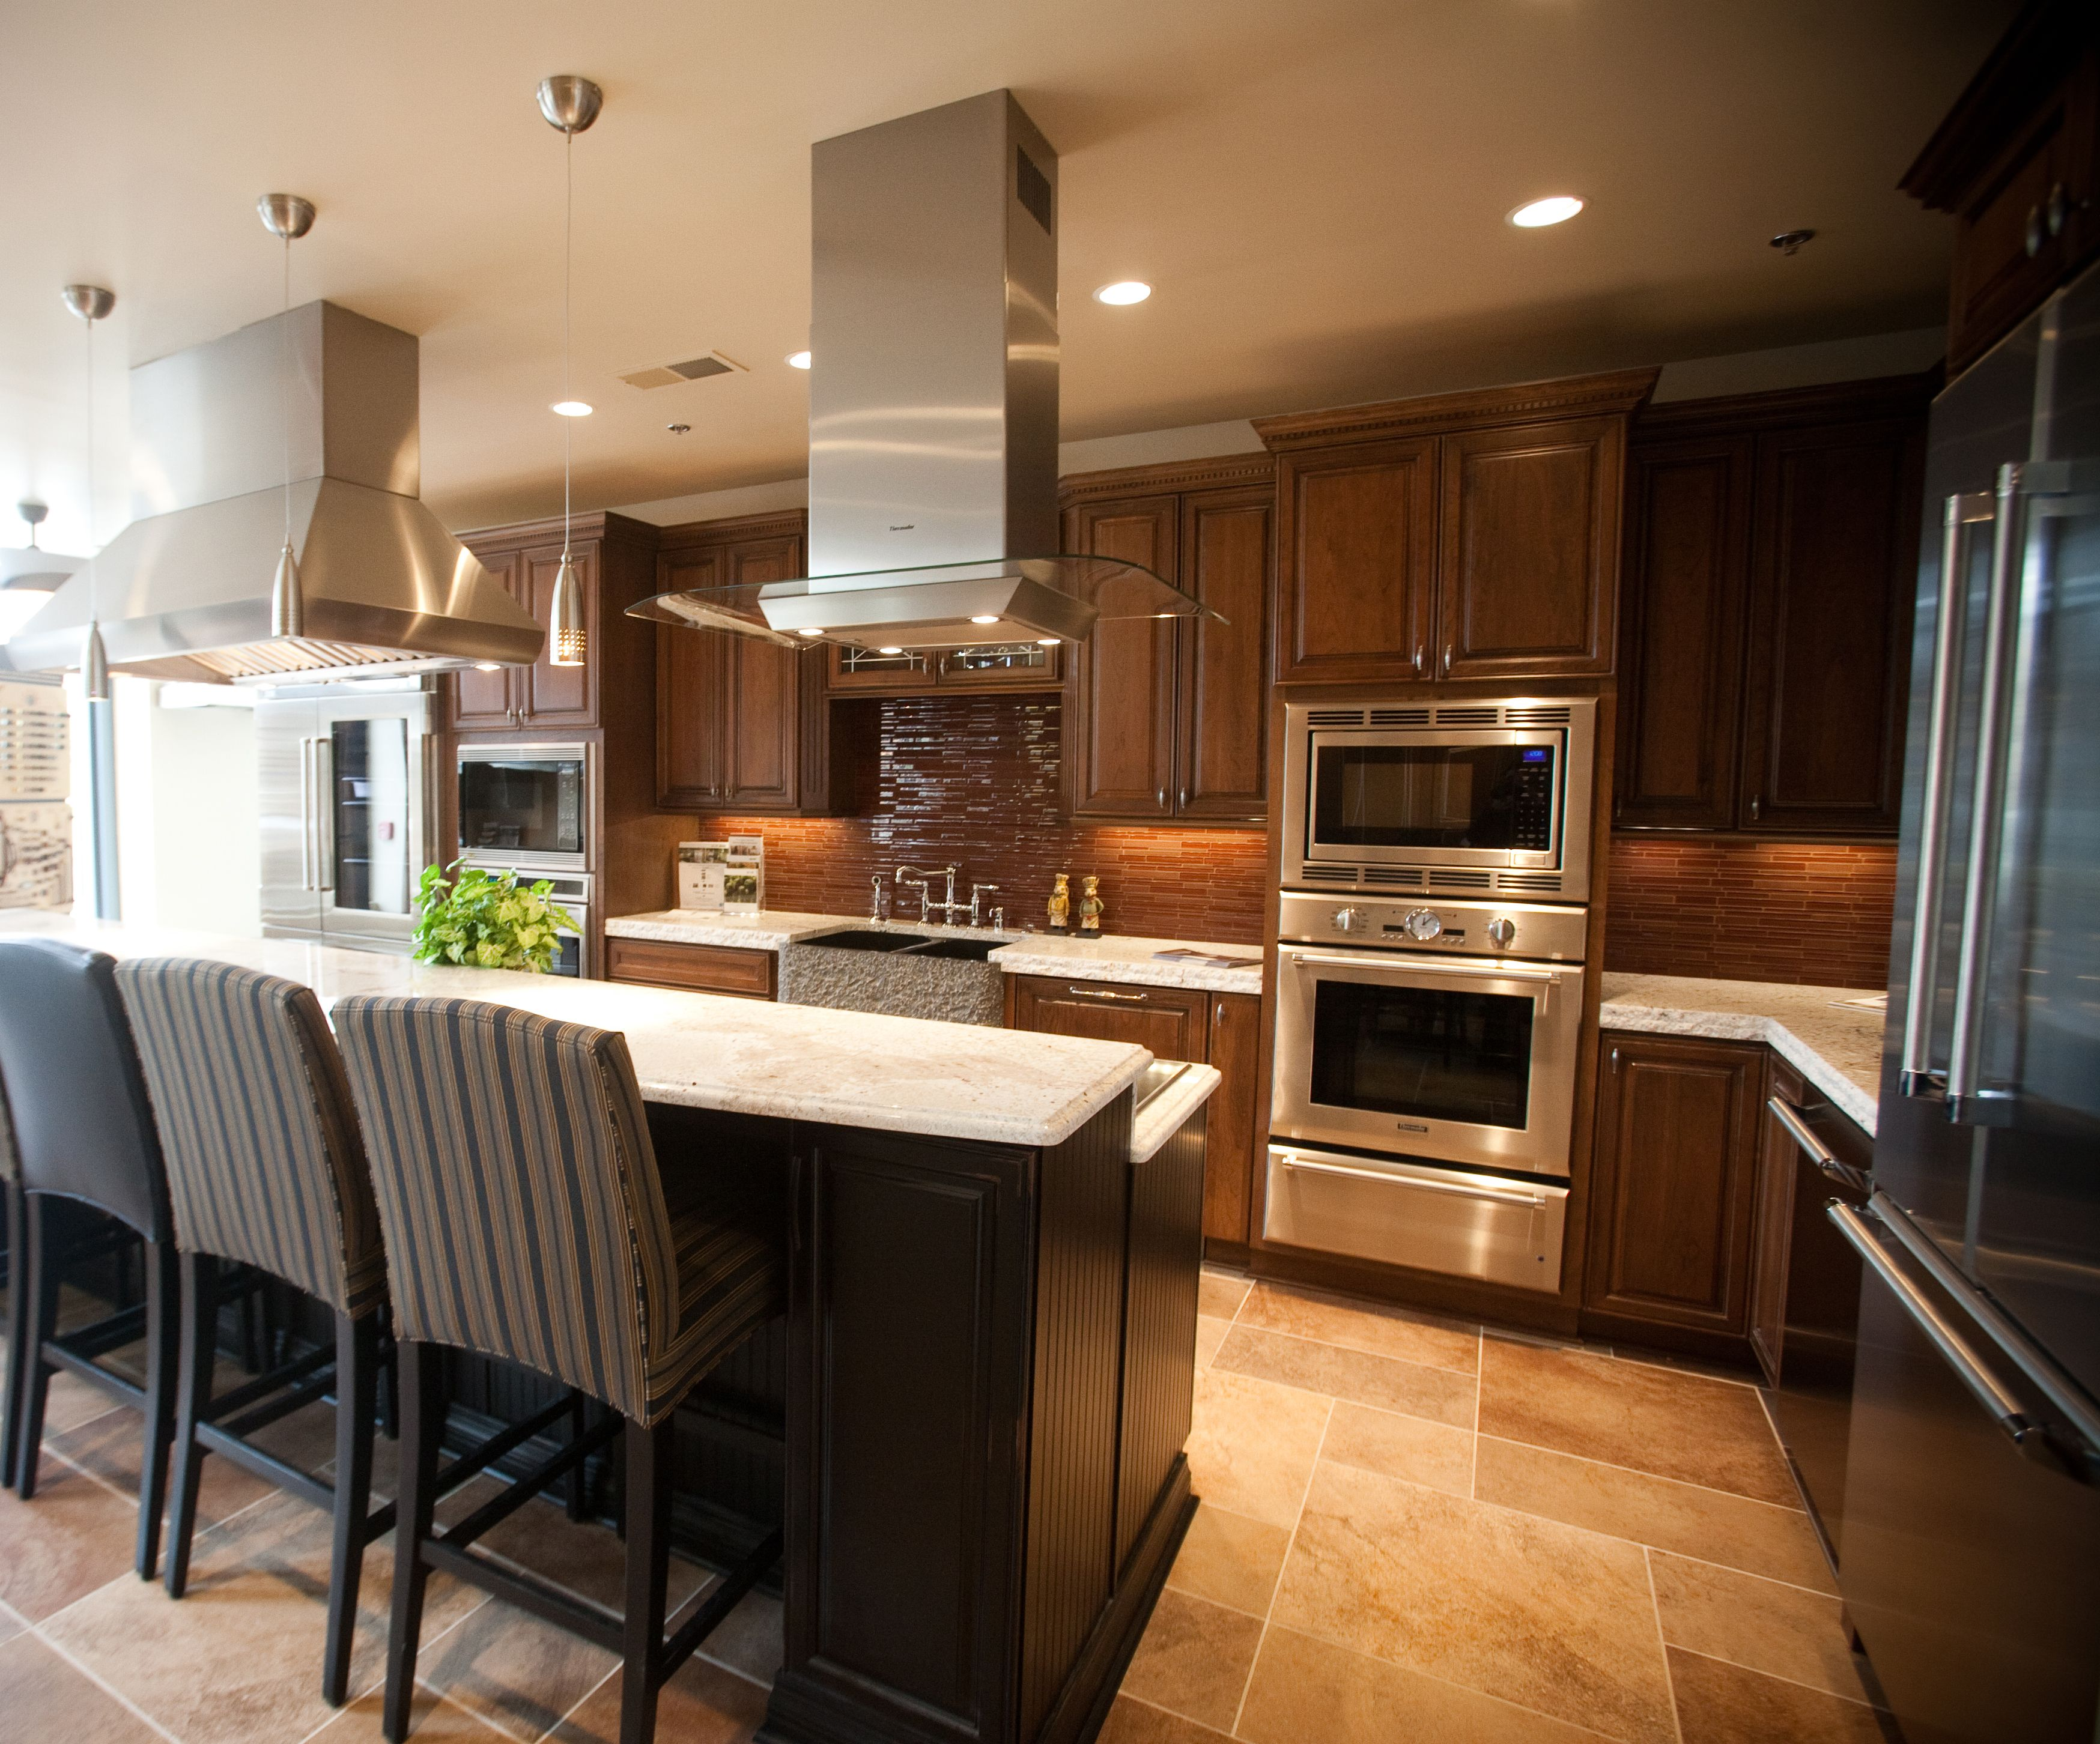 72612 photo of the day at ferguson whether you are building a whether you are building a new home or remodeling a room ferguson showrooms offer you the largest range of plumbing fixtures lighting and appliances from workwithnaturefo